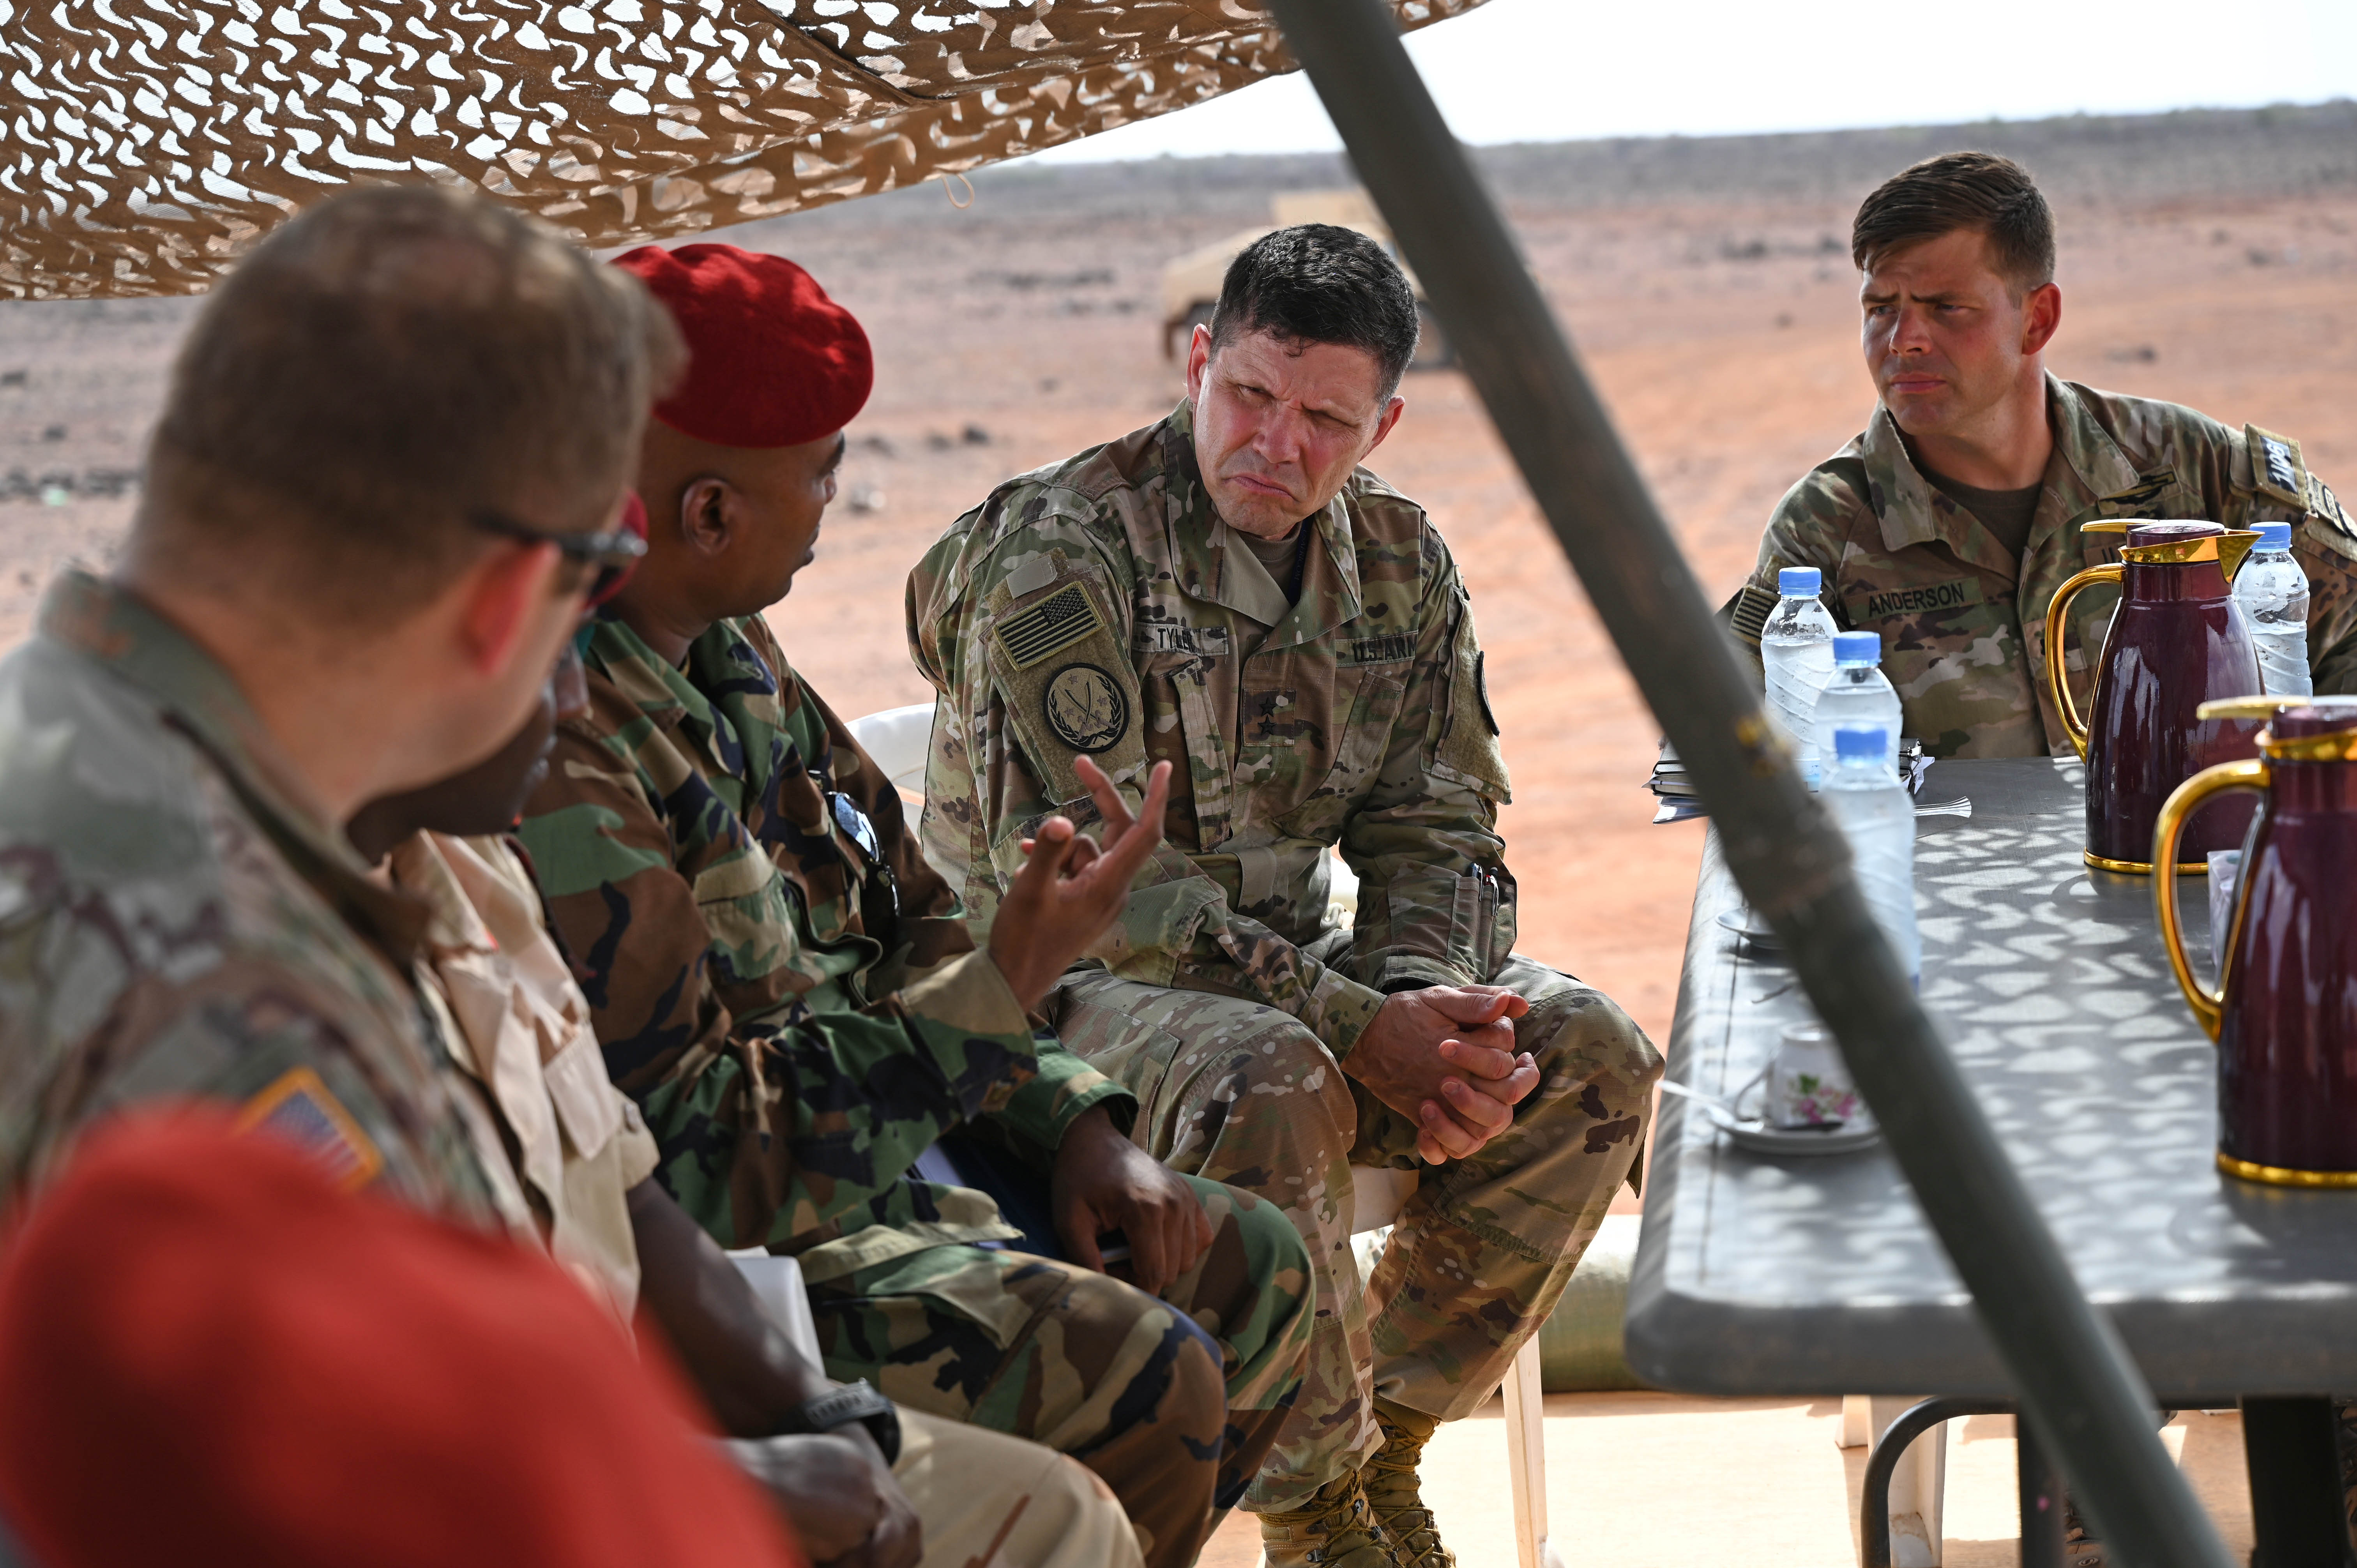 U.S. Army Major General Lapthe C. Flora, commanding general of Combined Joint Task Force - Horn of Africa (CJTF-HOA), attends partner force dinner in Mogadishu, Somalia, Aug. 8, 2020. (U.S. Air Force photo by Senior Airman Kristen A. Heller)